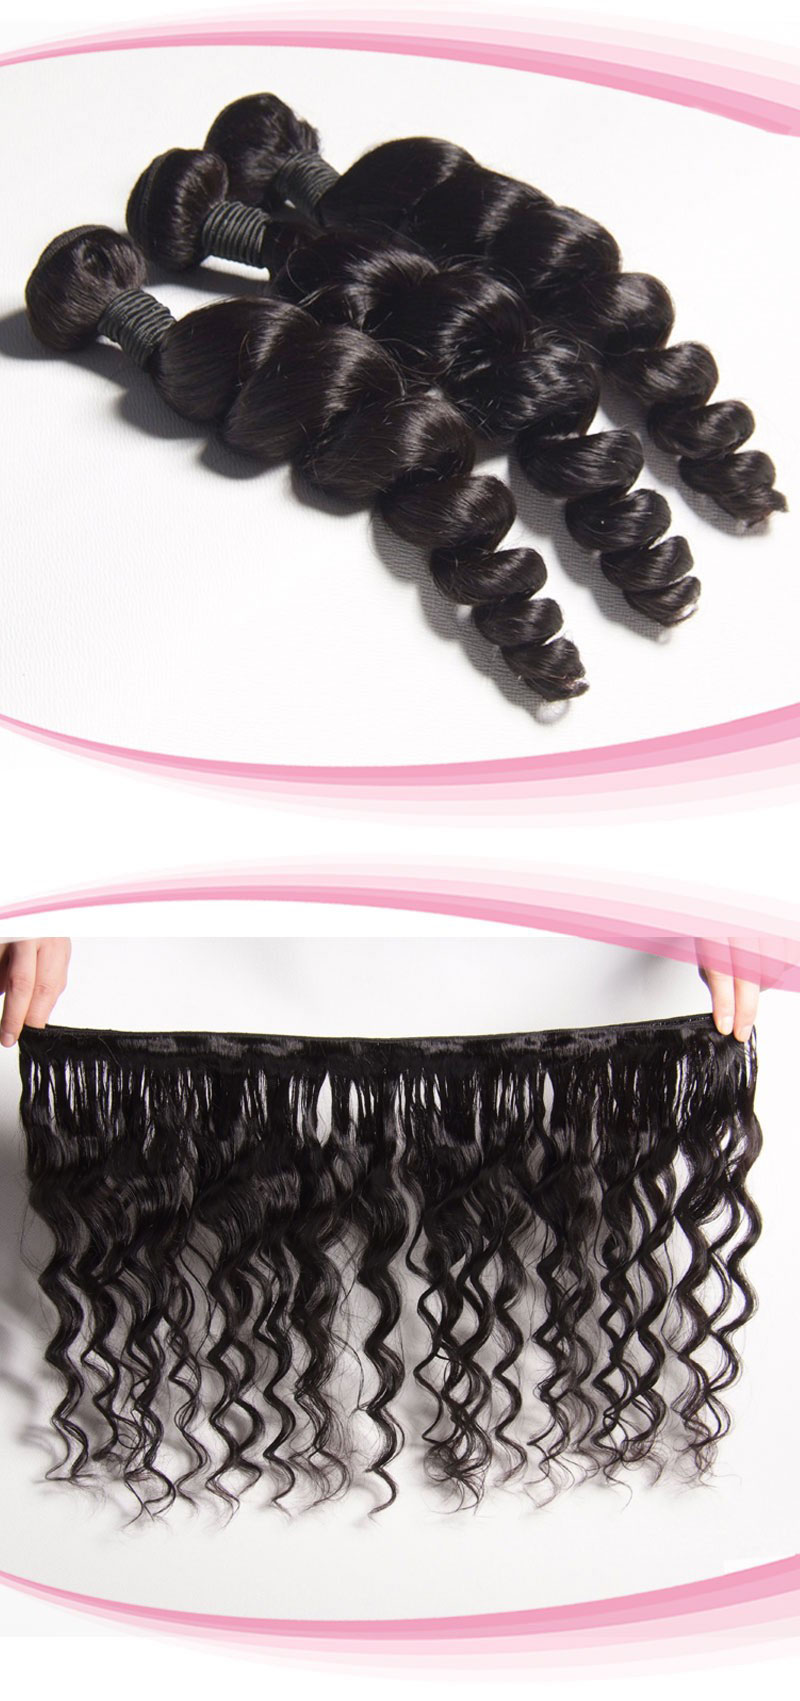 Peruvian Virgin Hair Weaves Loose Wave 3pcs Bundles With Lace Closure 4x4inch No Part [WPL30]